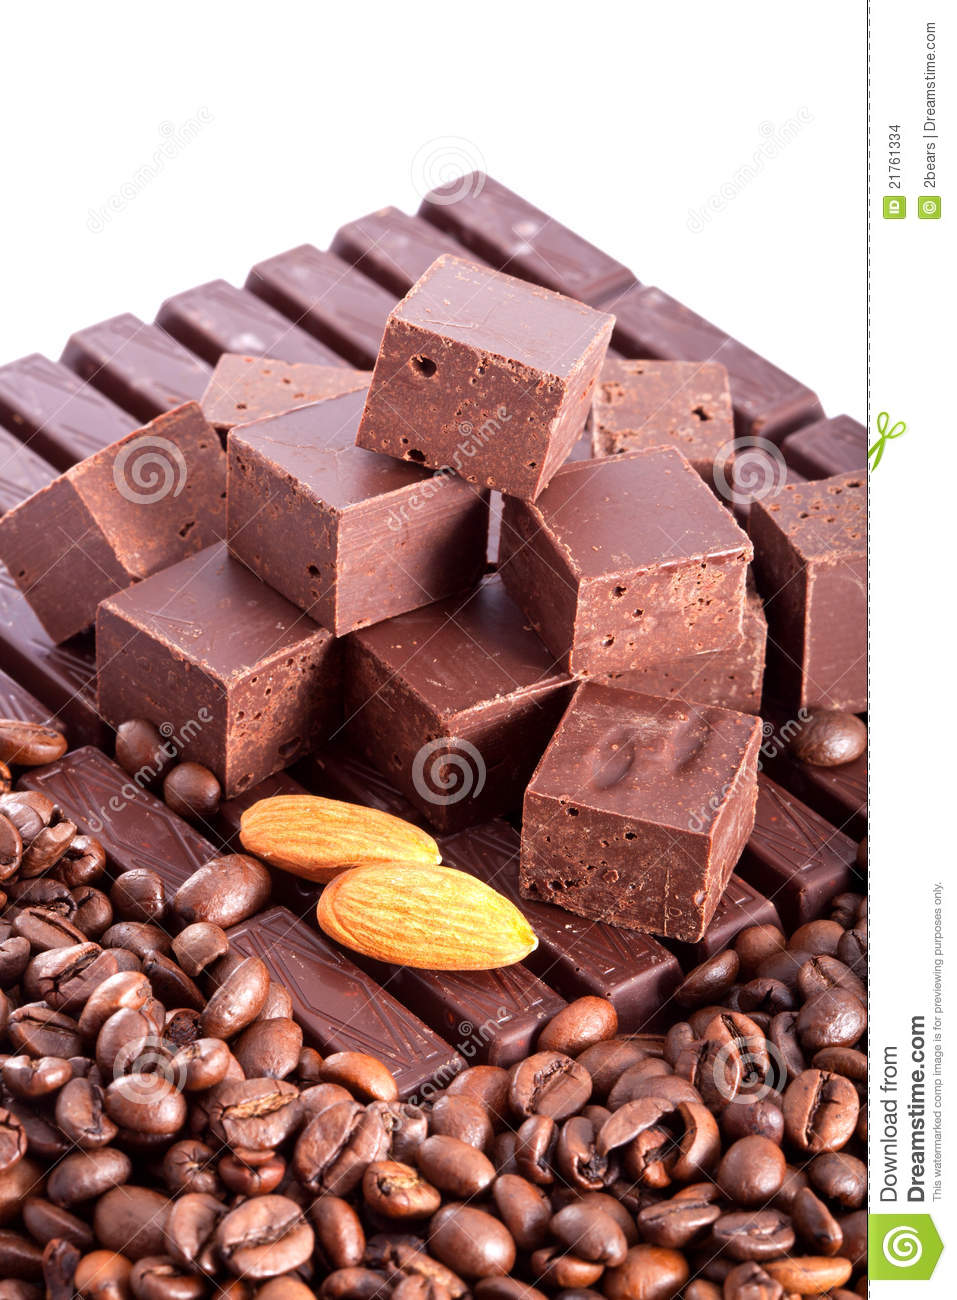 The Big Chocolate Bar Stock Images - Image: 21761334